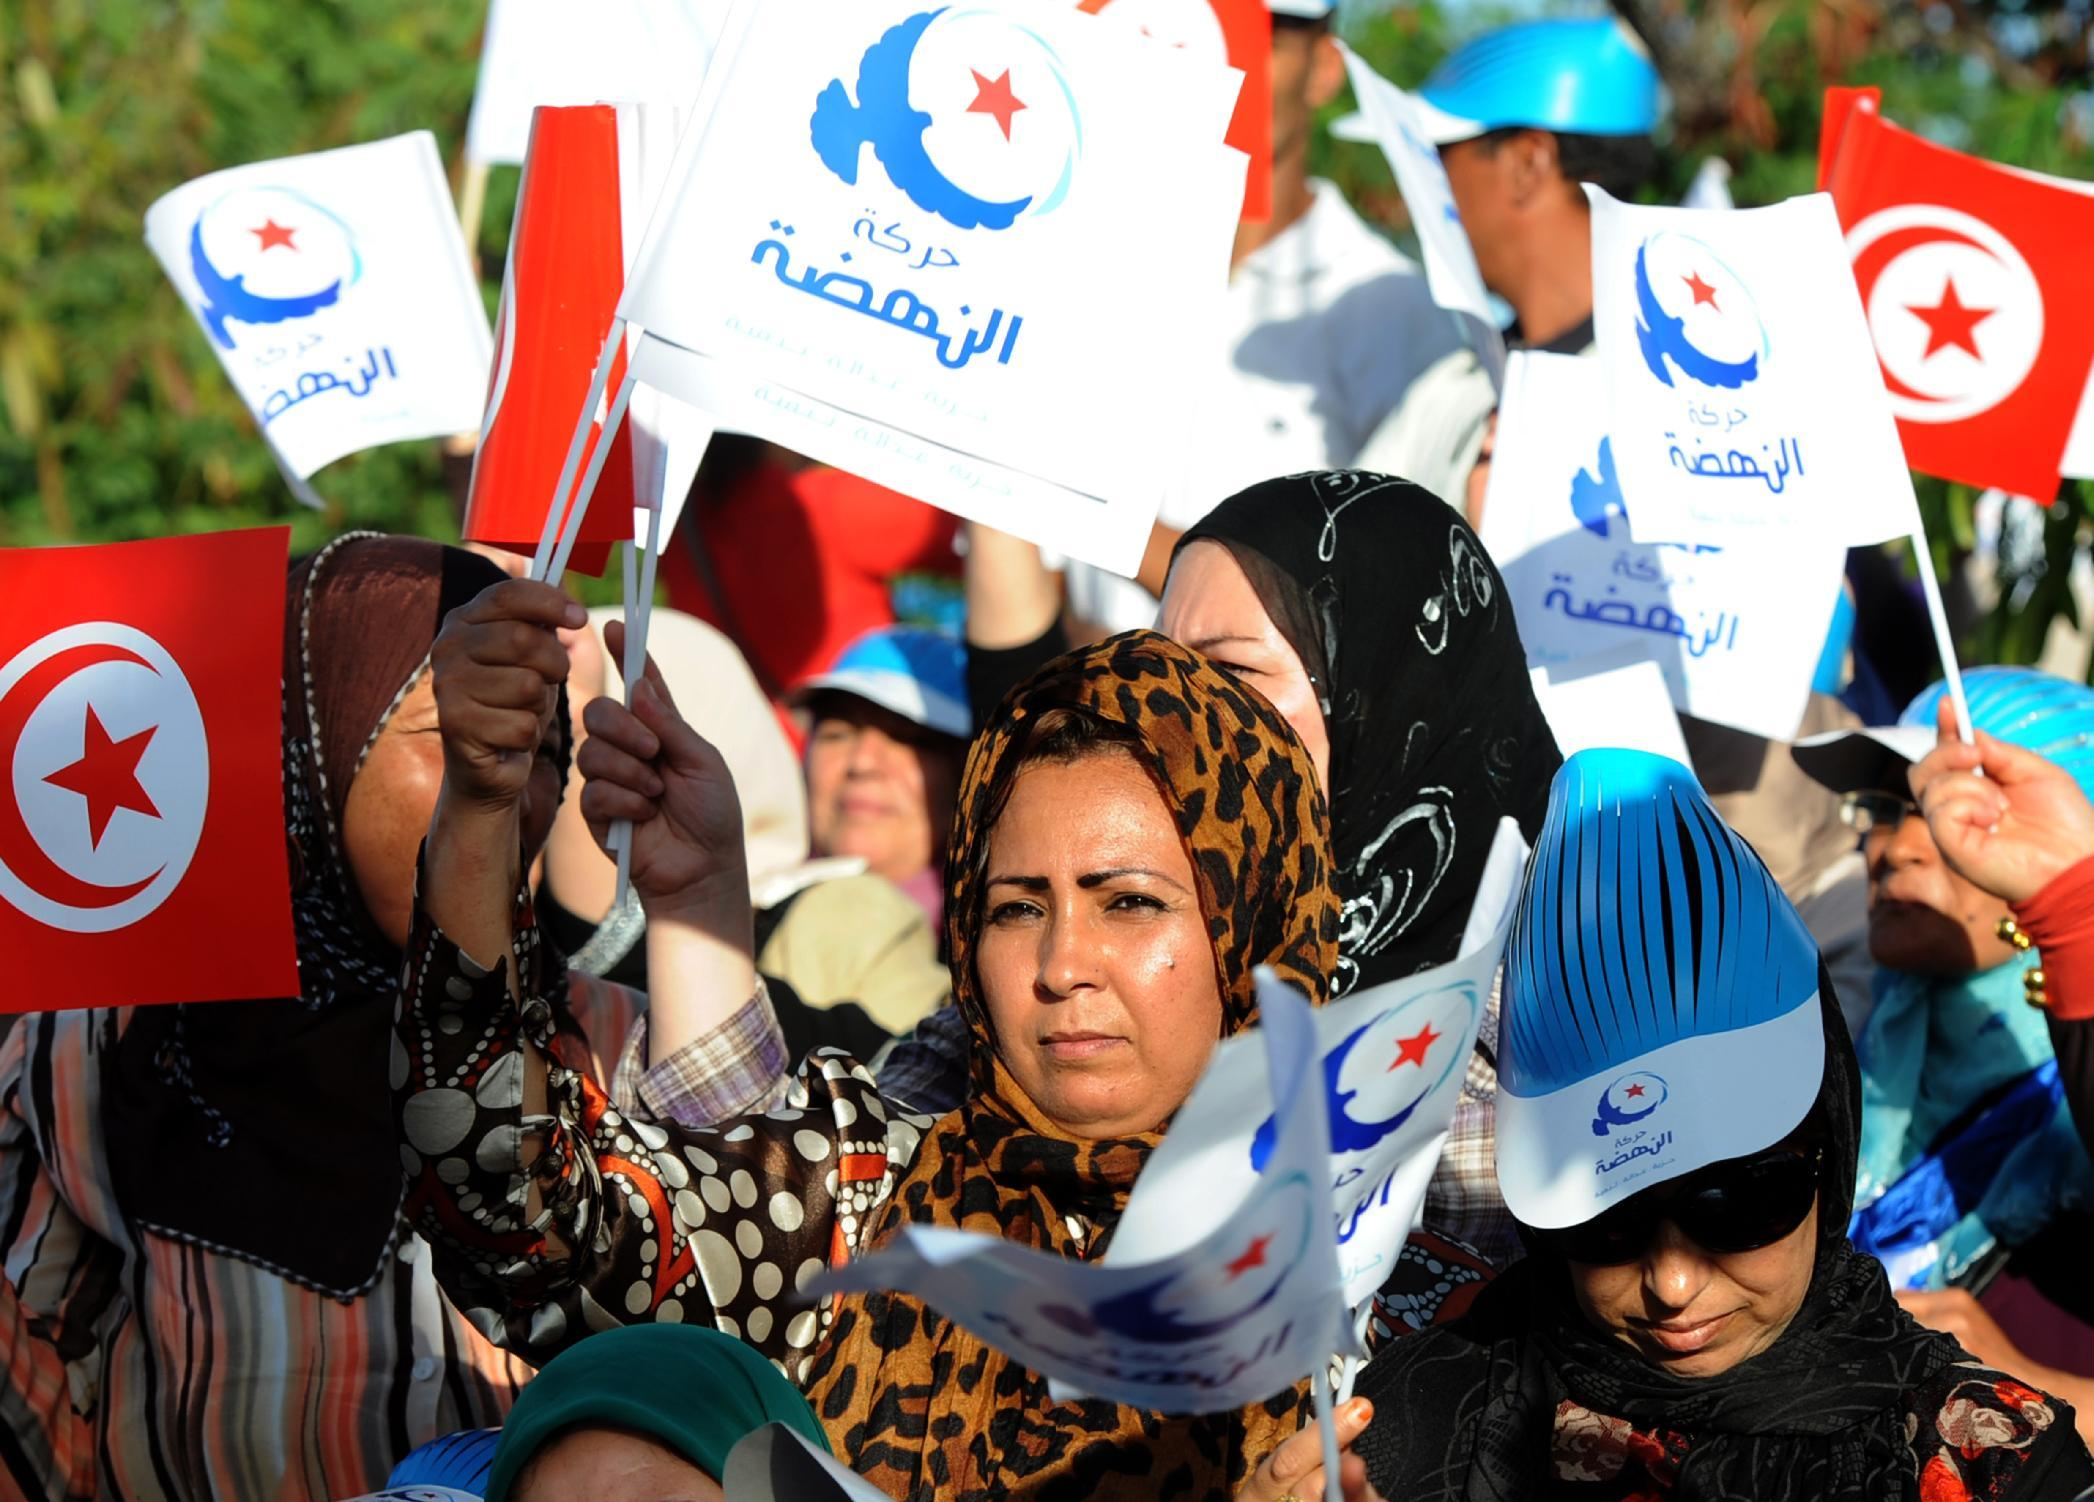 Tunisian supporters of Rached Ghannouchi wave flags during an election rally in Bizerte, on October 15, 2014 (AFP Photo/Fethi Belaid)